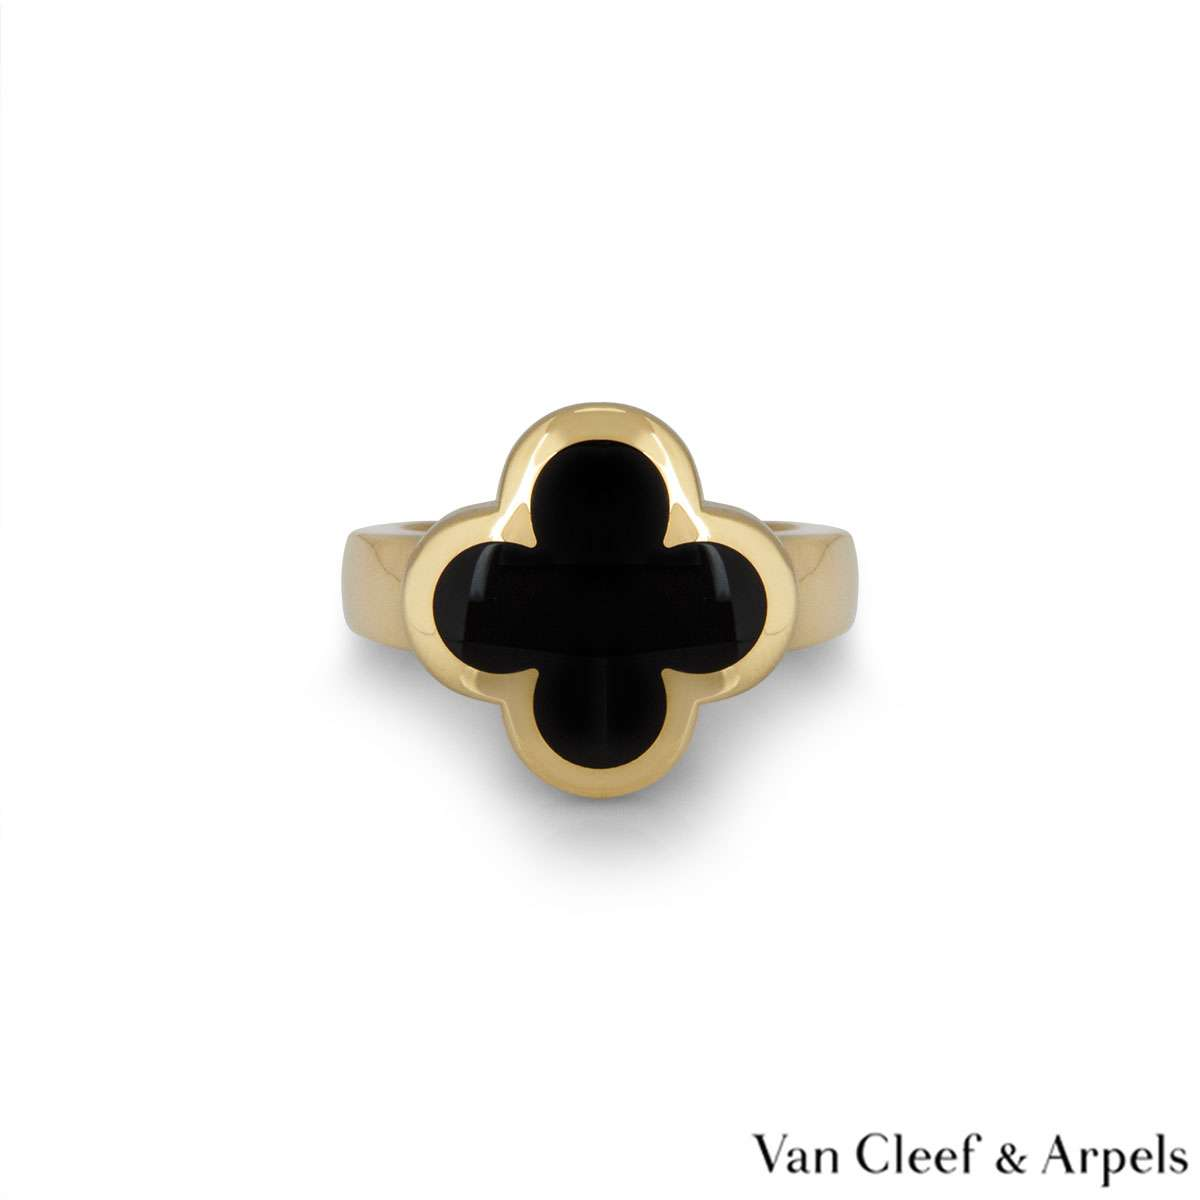 Van Cleef & Arpels Yellow Gold Pure Alhambra Ring VCARB13800